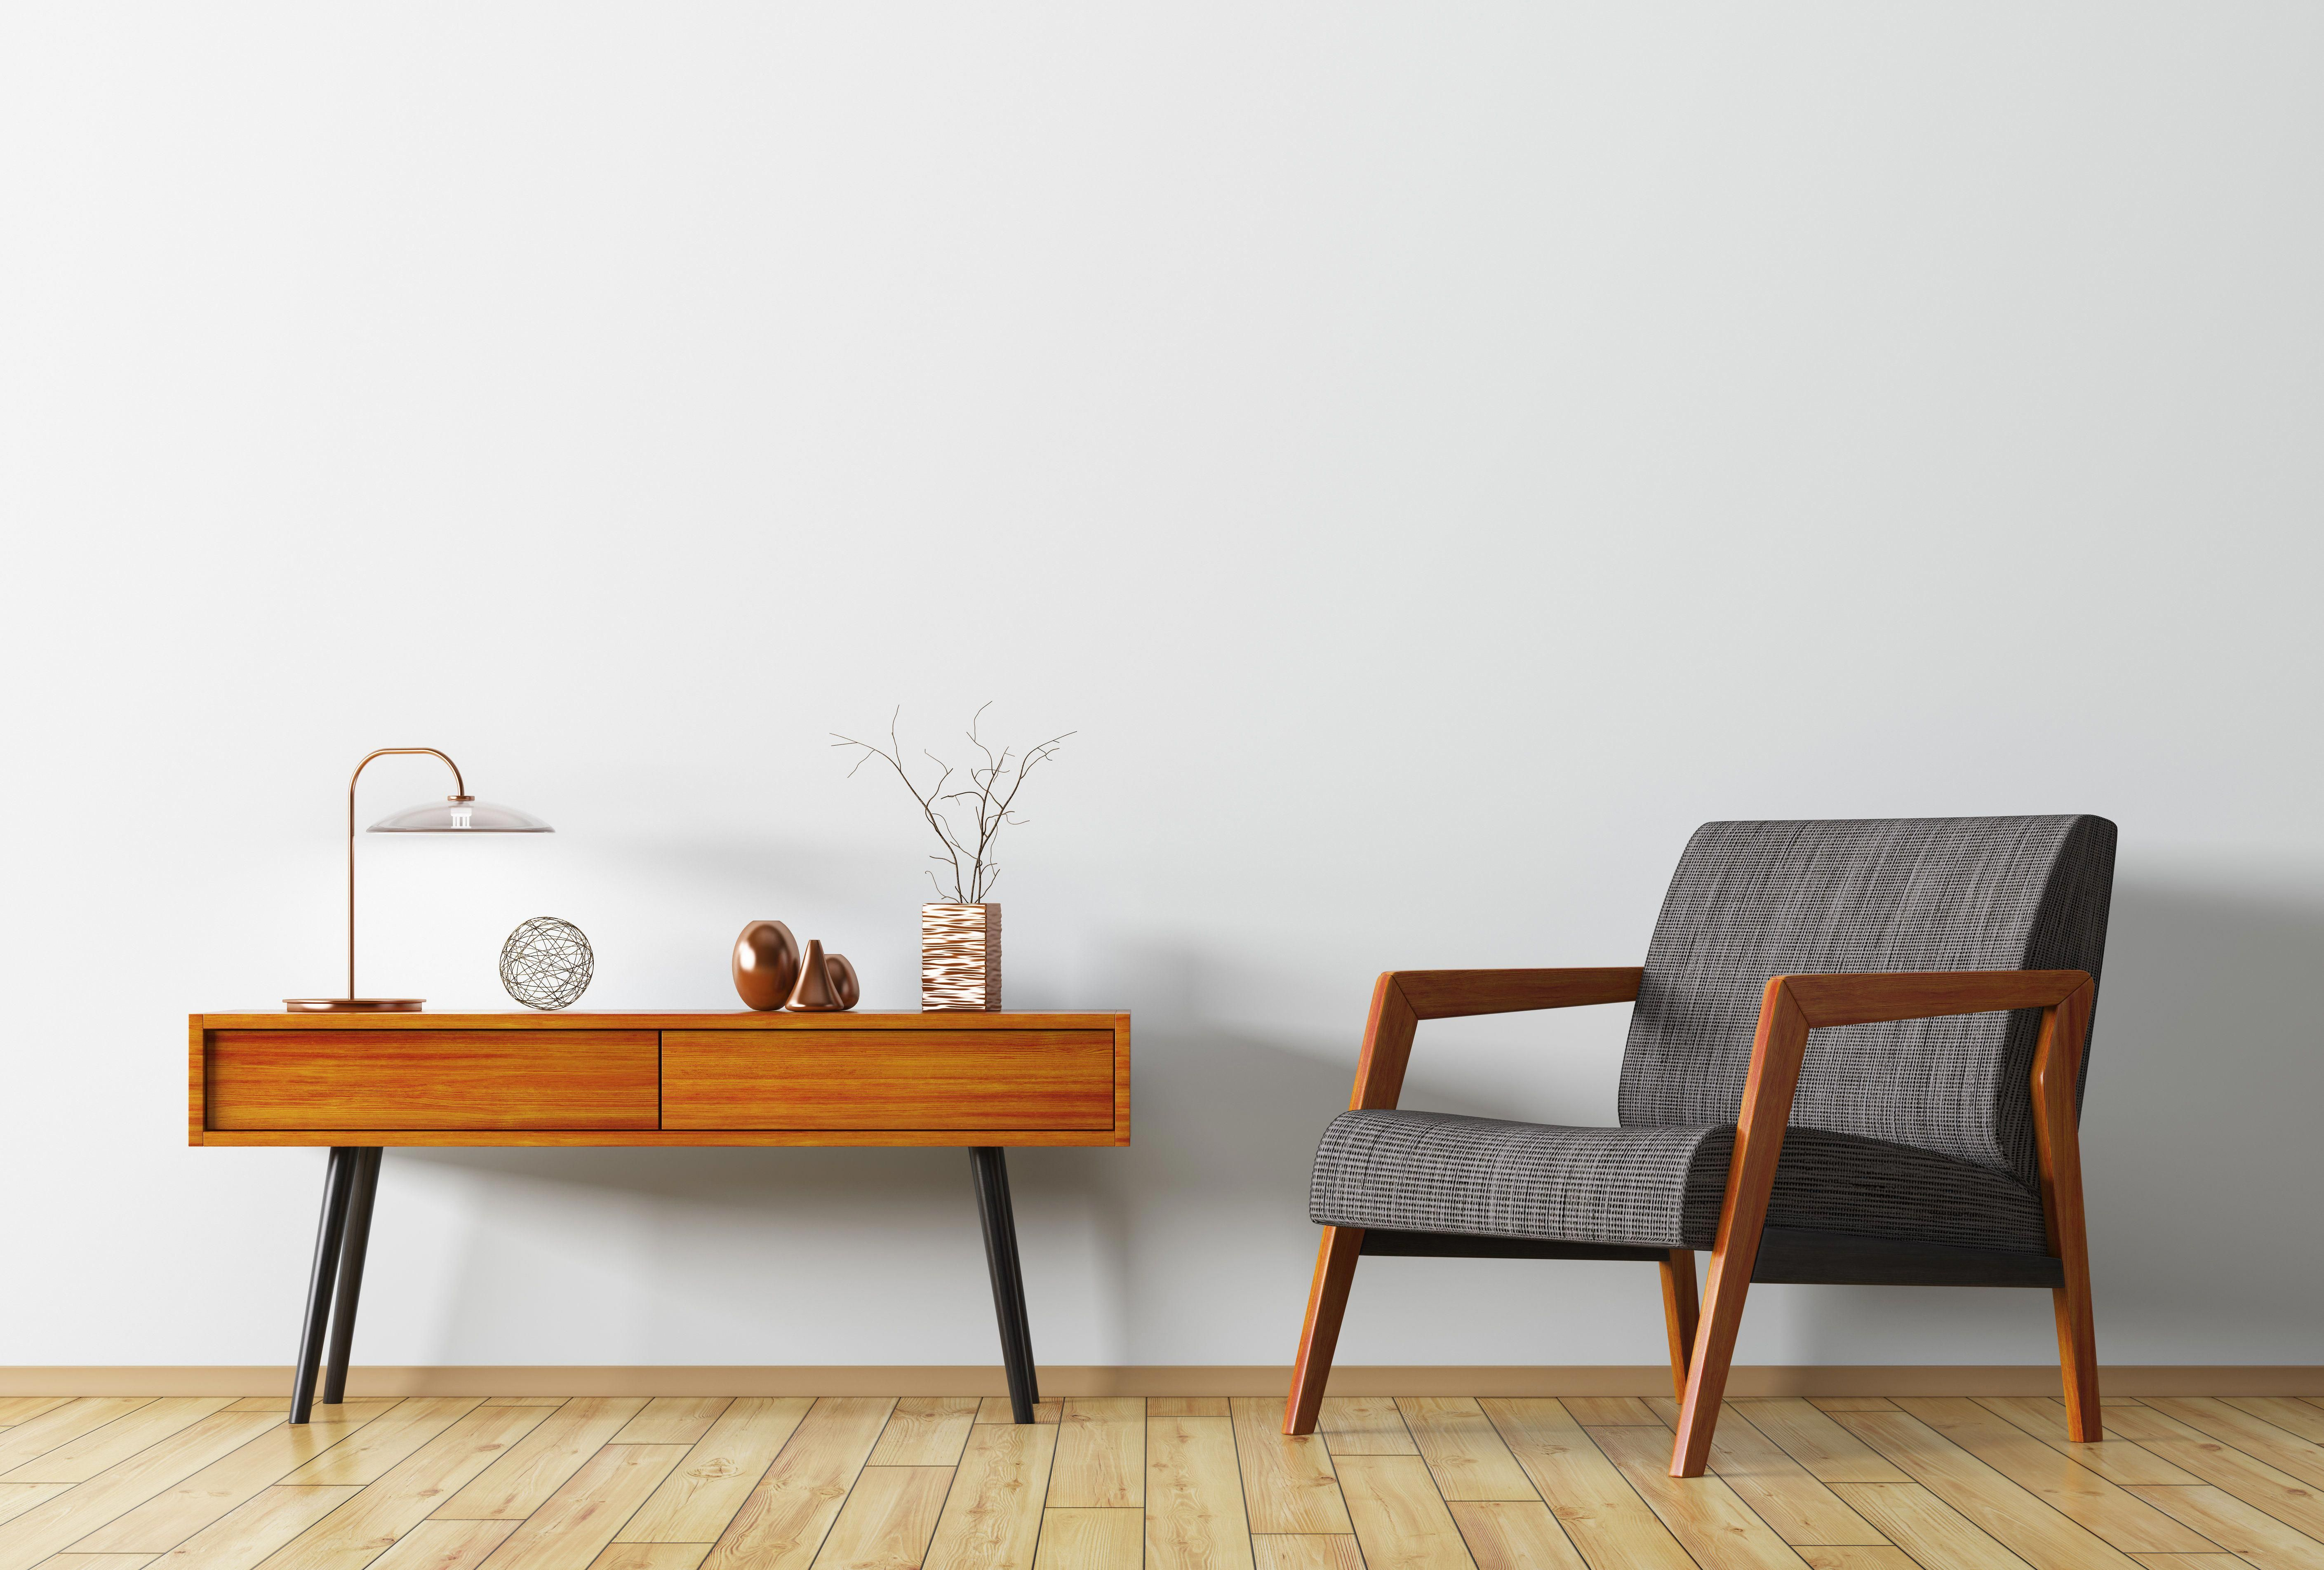 The best sites for affordable mid century modern furniture and decor in one exhaustive